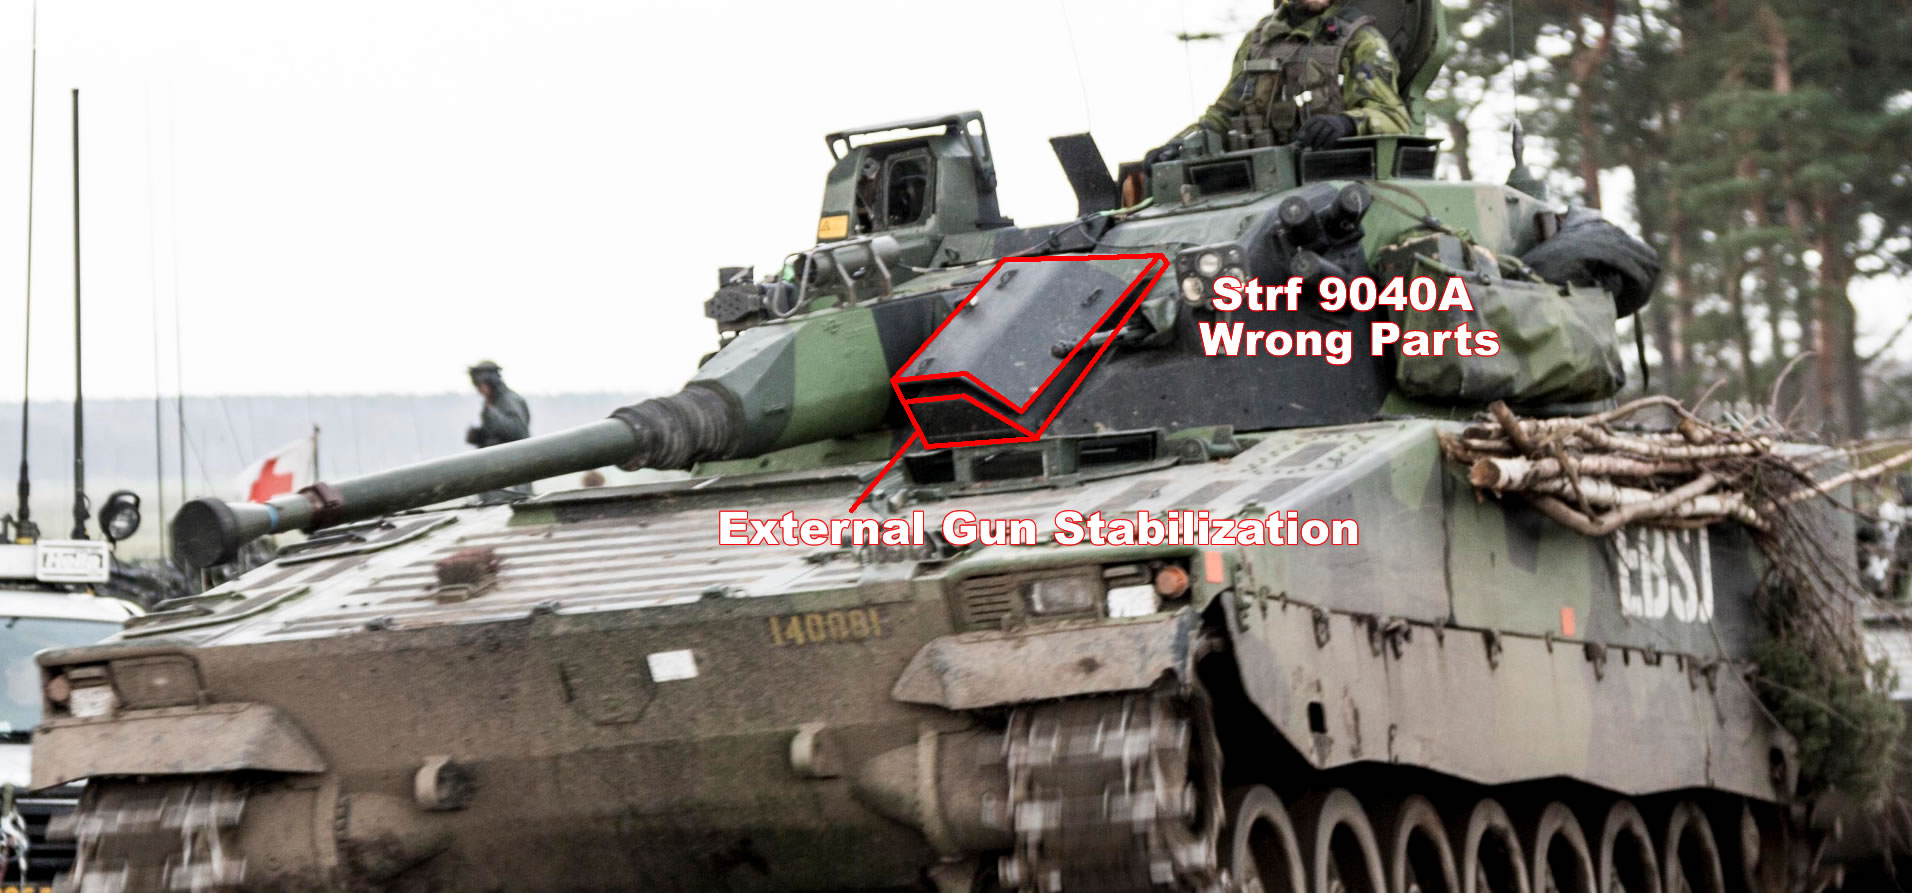 Estonia received the first infantry fighting vehicles CV9035NL Mk III from the Netherlands